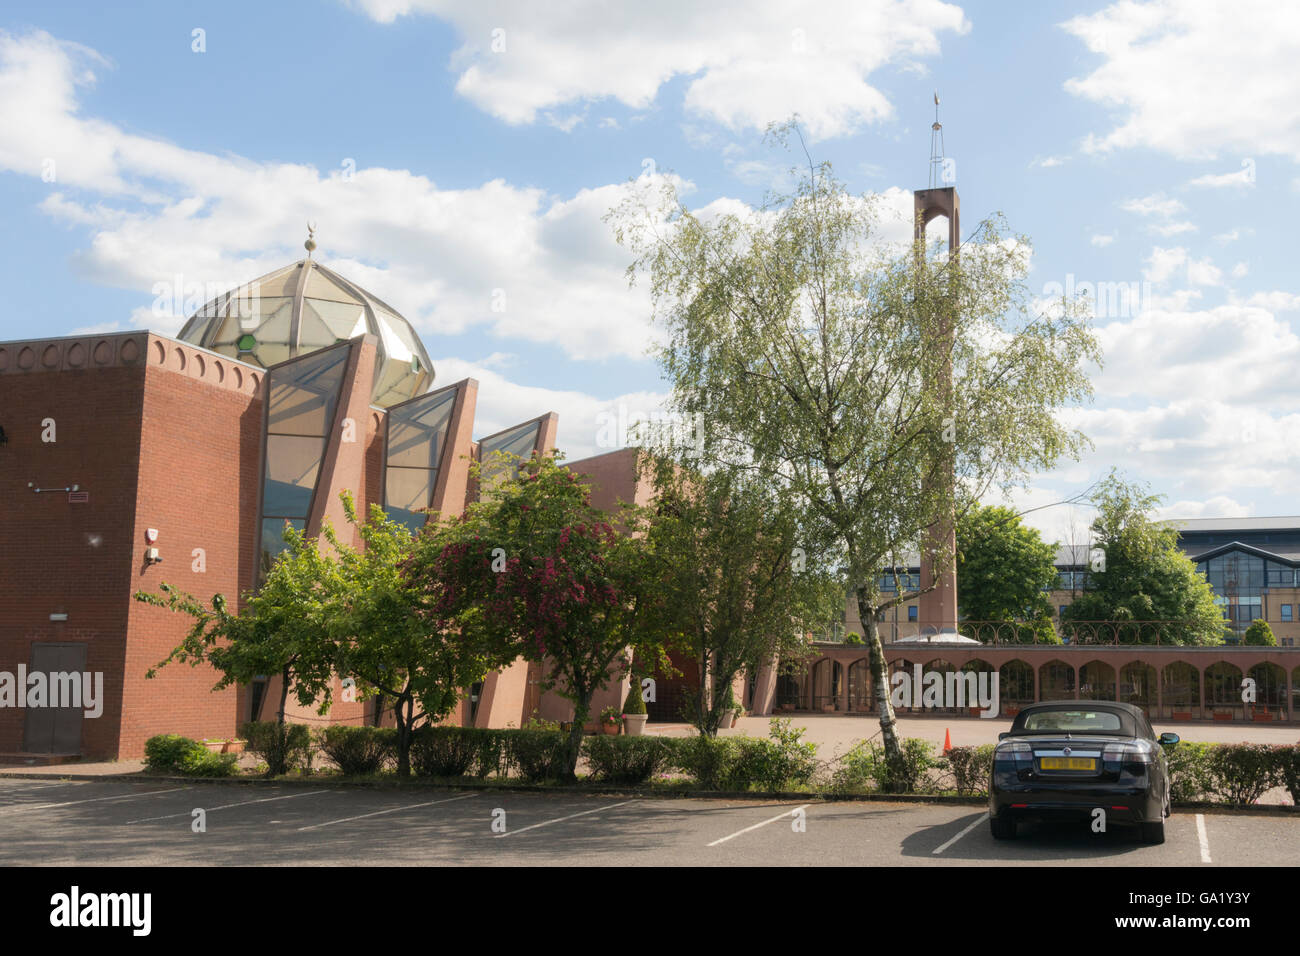 Glasgow Central Mosque,Gorbals,Glasgow,Scotland,UK, - Stock Image